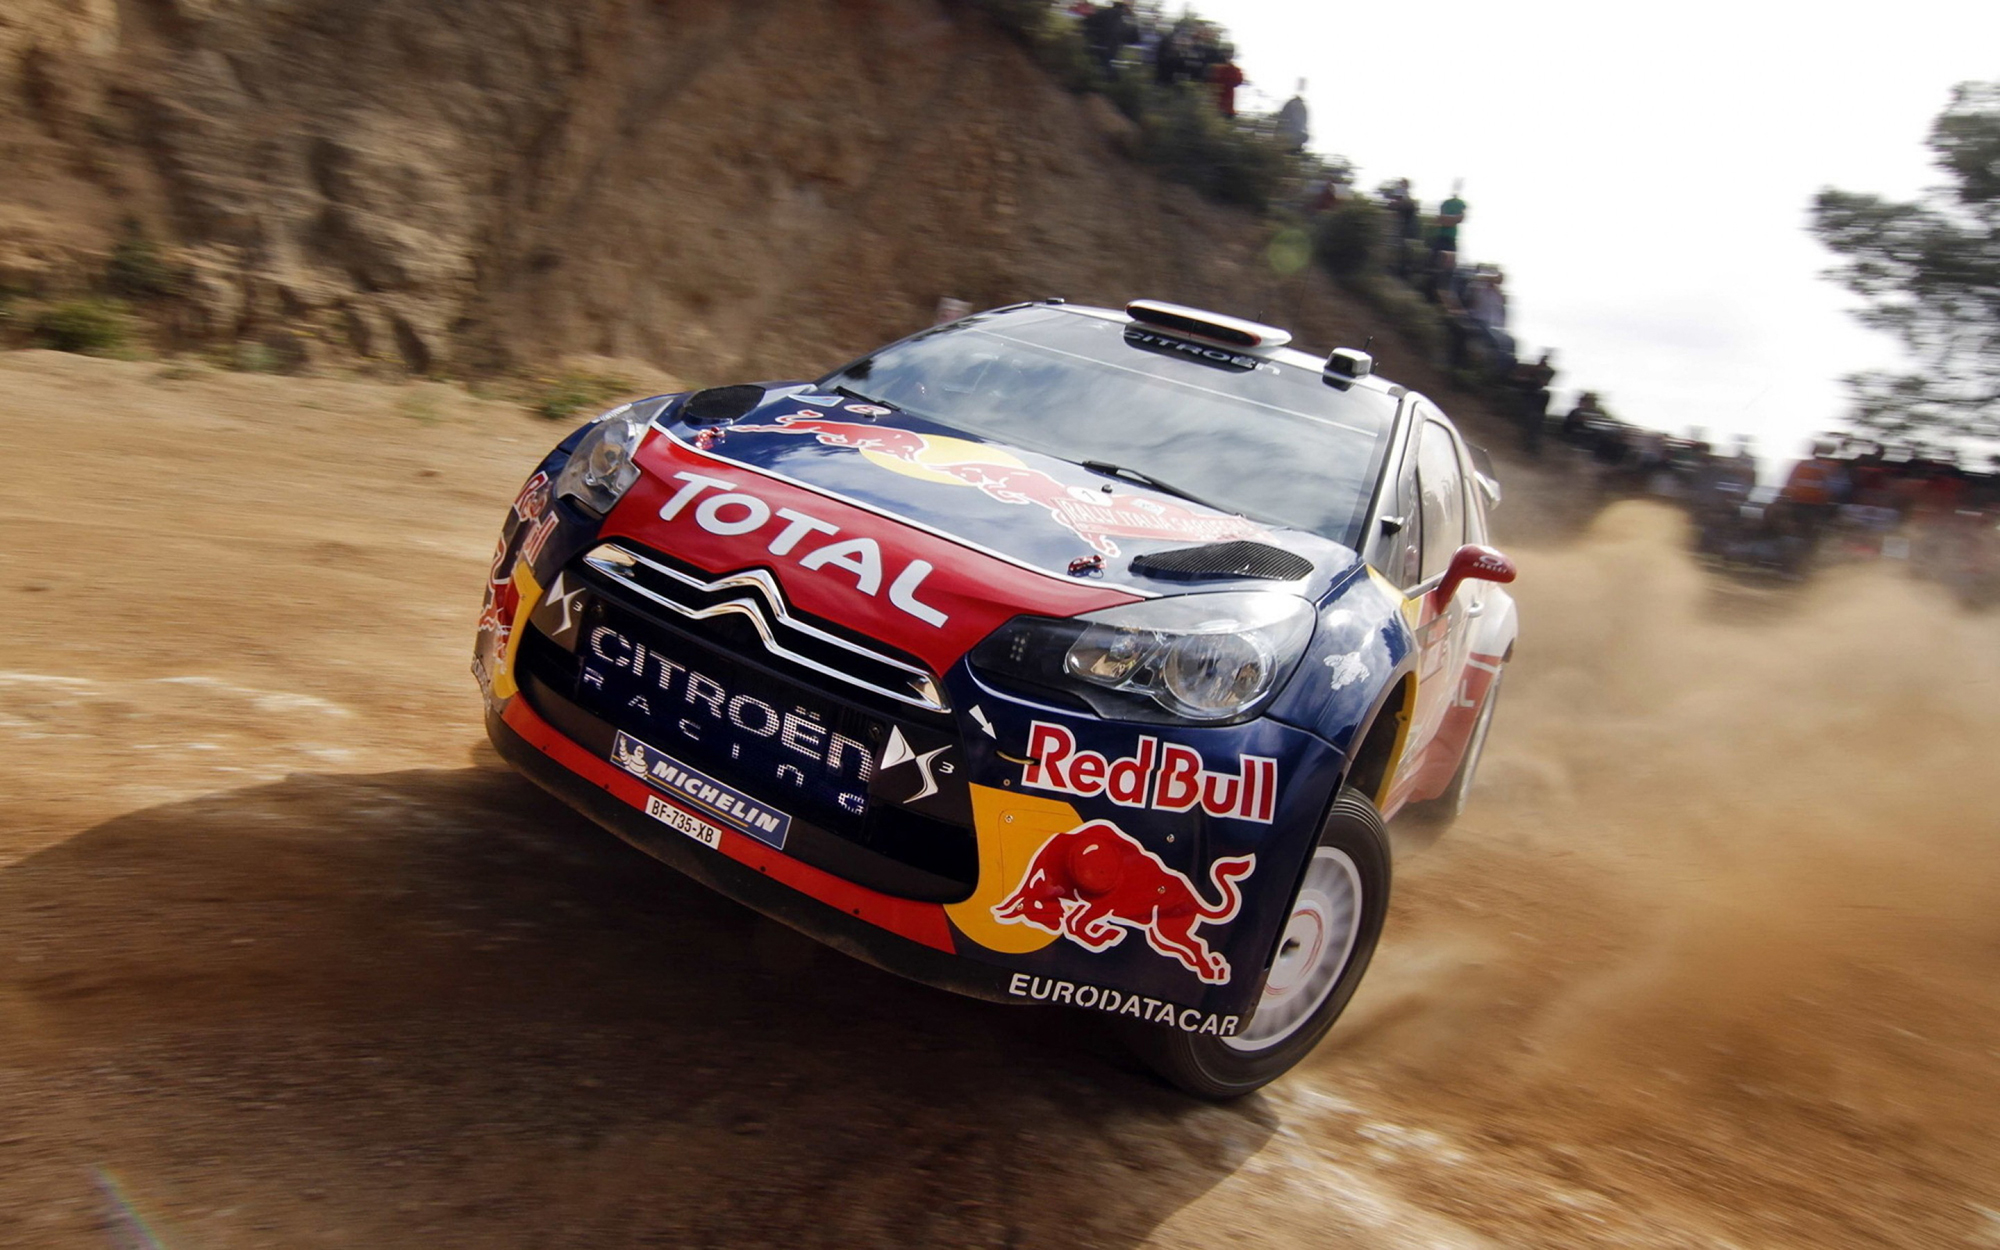 sebastien loeb rally evo review rocky road. Black Bedroom Furniture Sets. Home Design Ideas